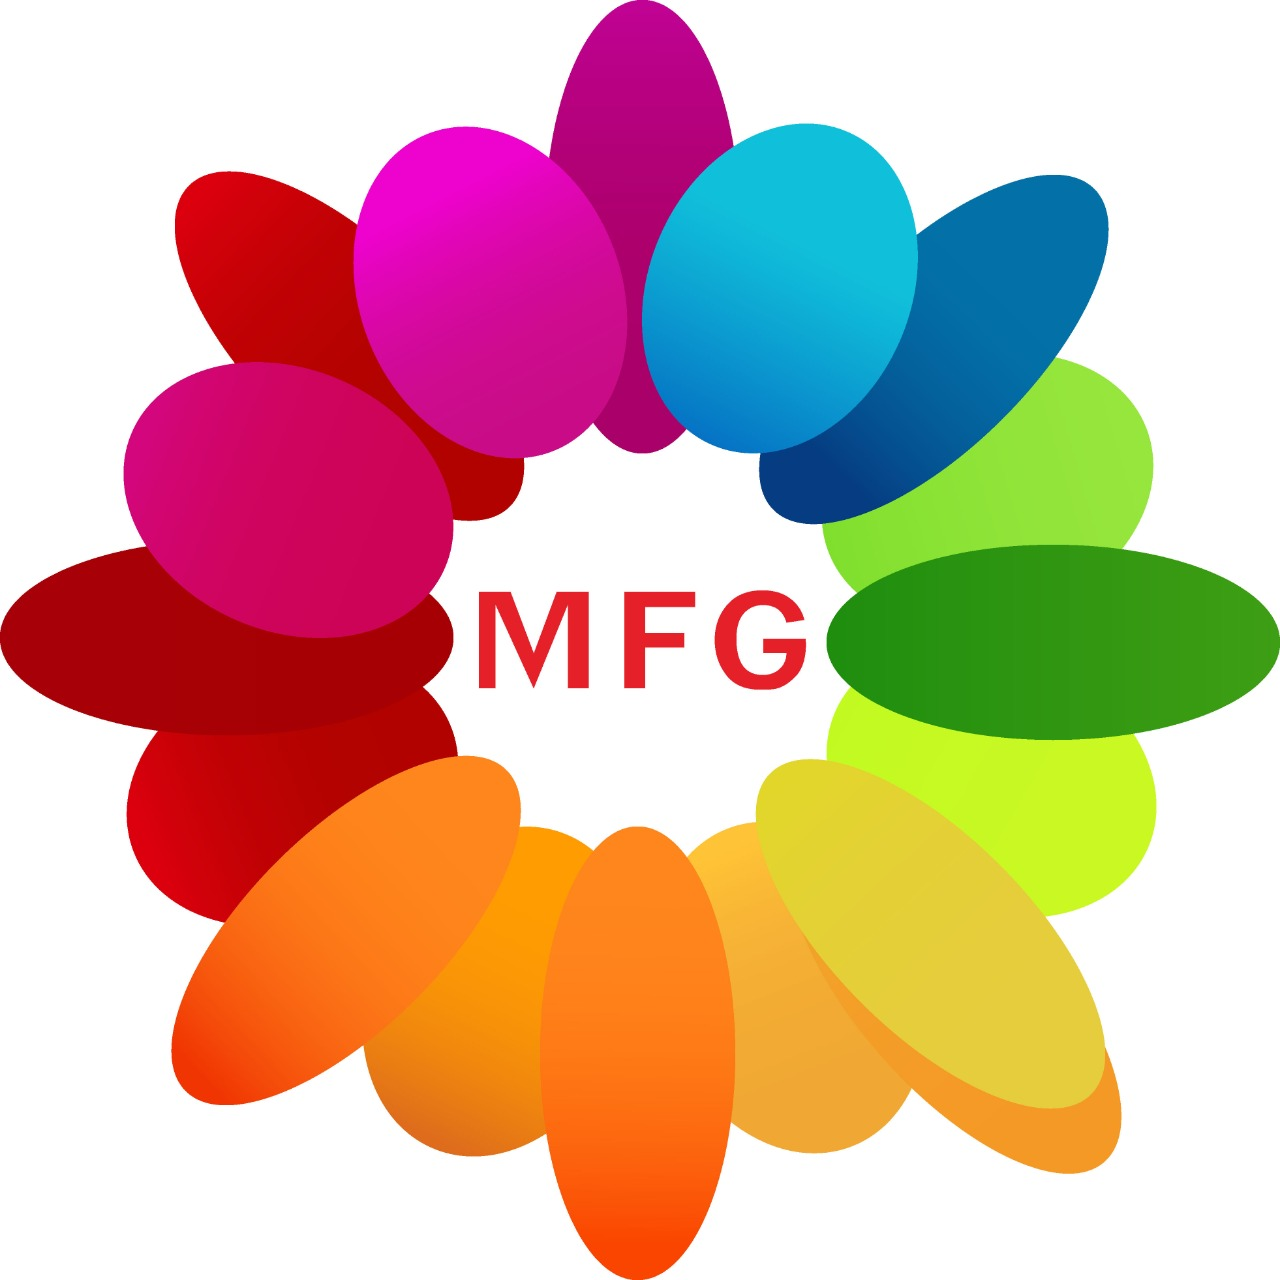 Beautiful bunch of white lilies & red roses with 1 pound chocovanilla cake with 16 pcs rocher ferrero chocolates